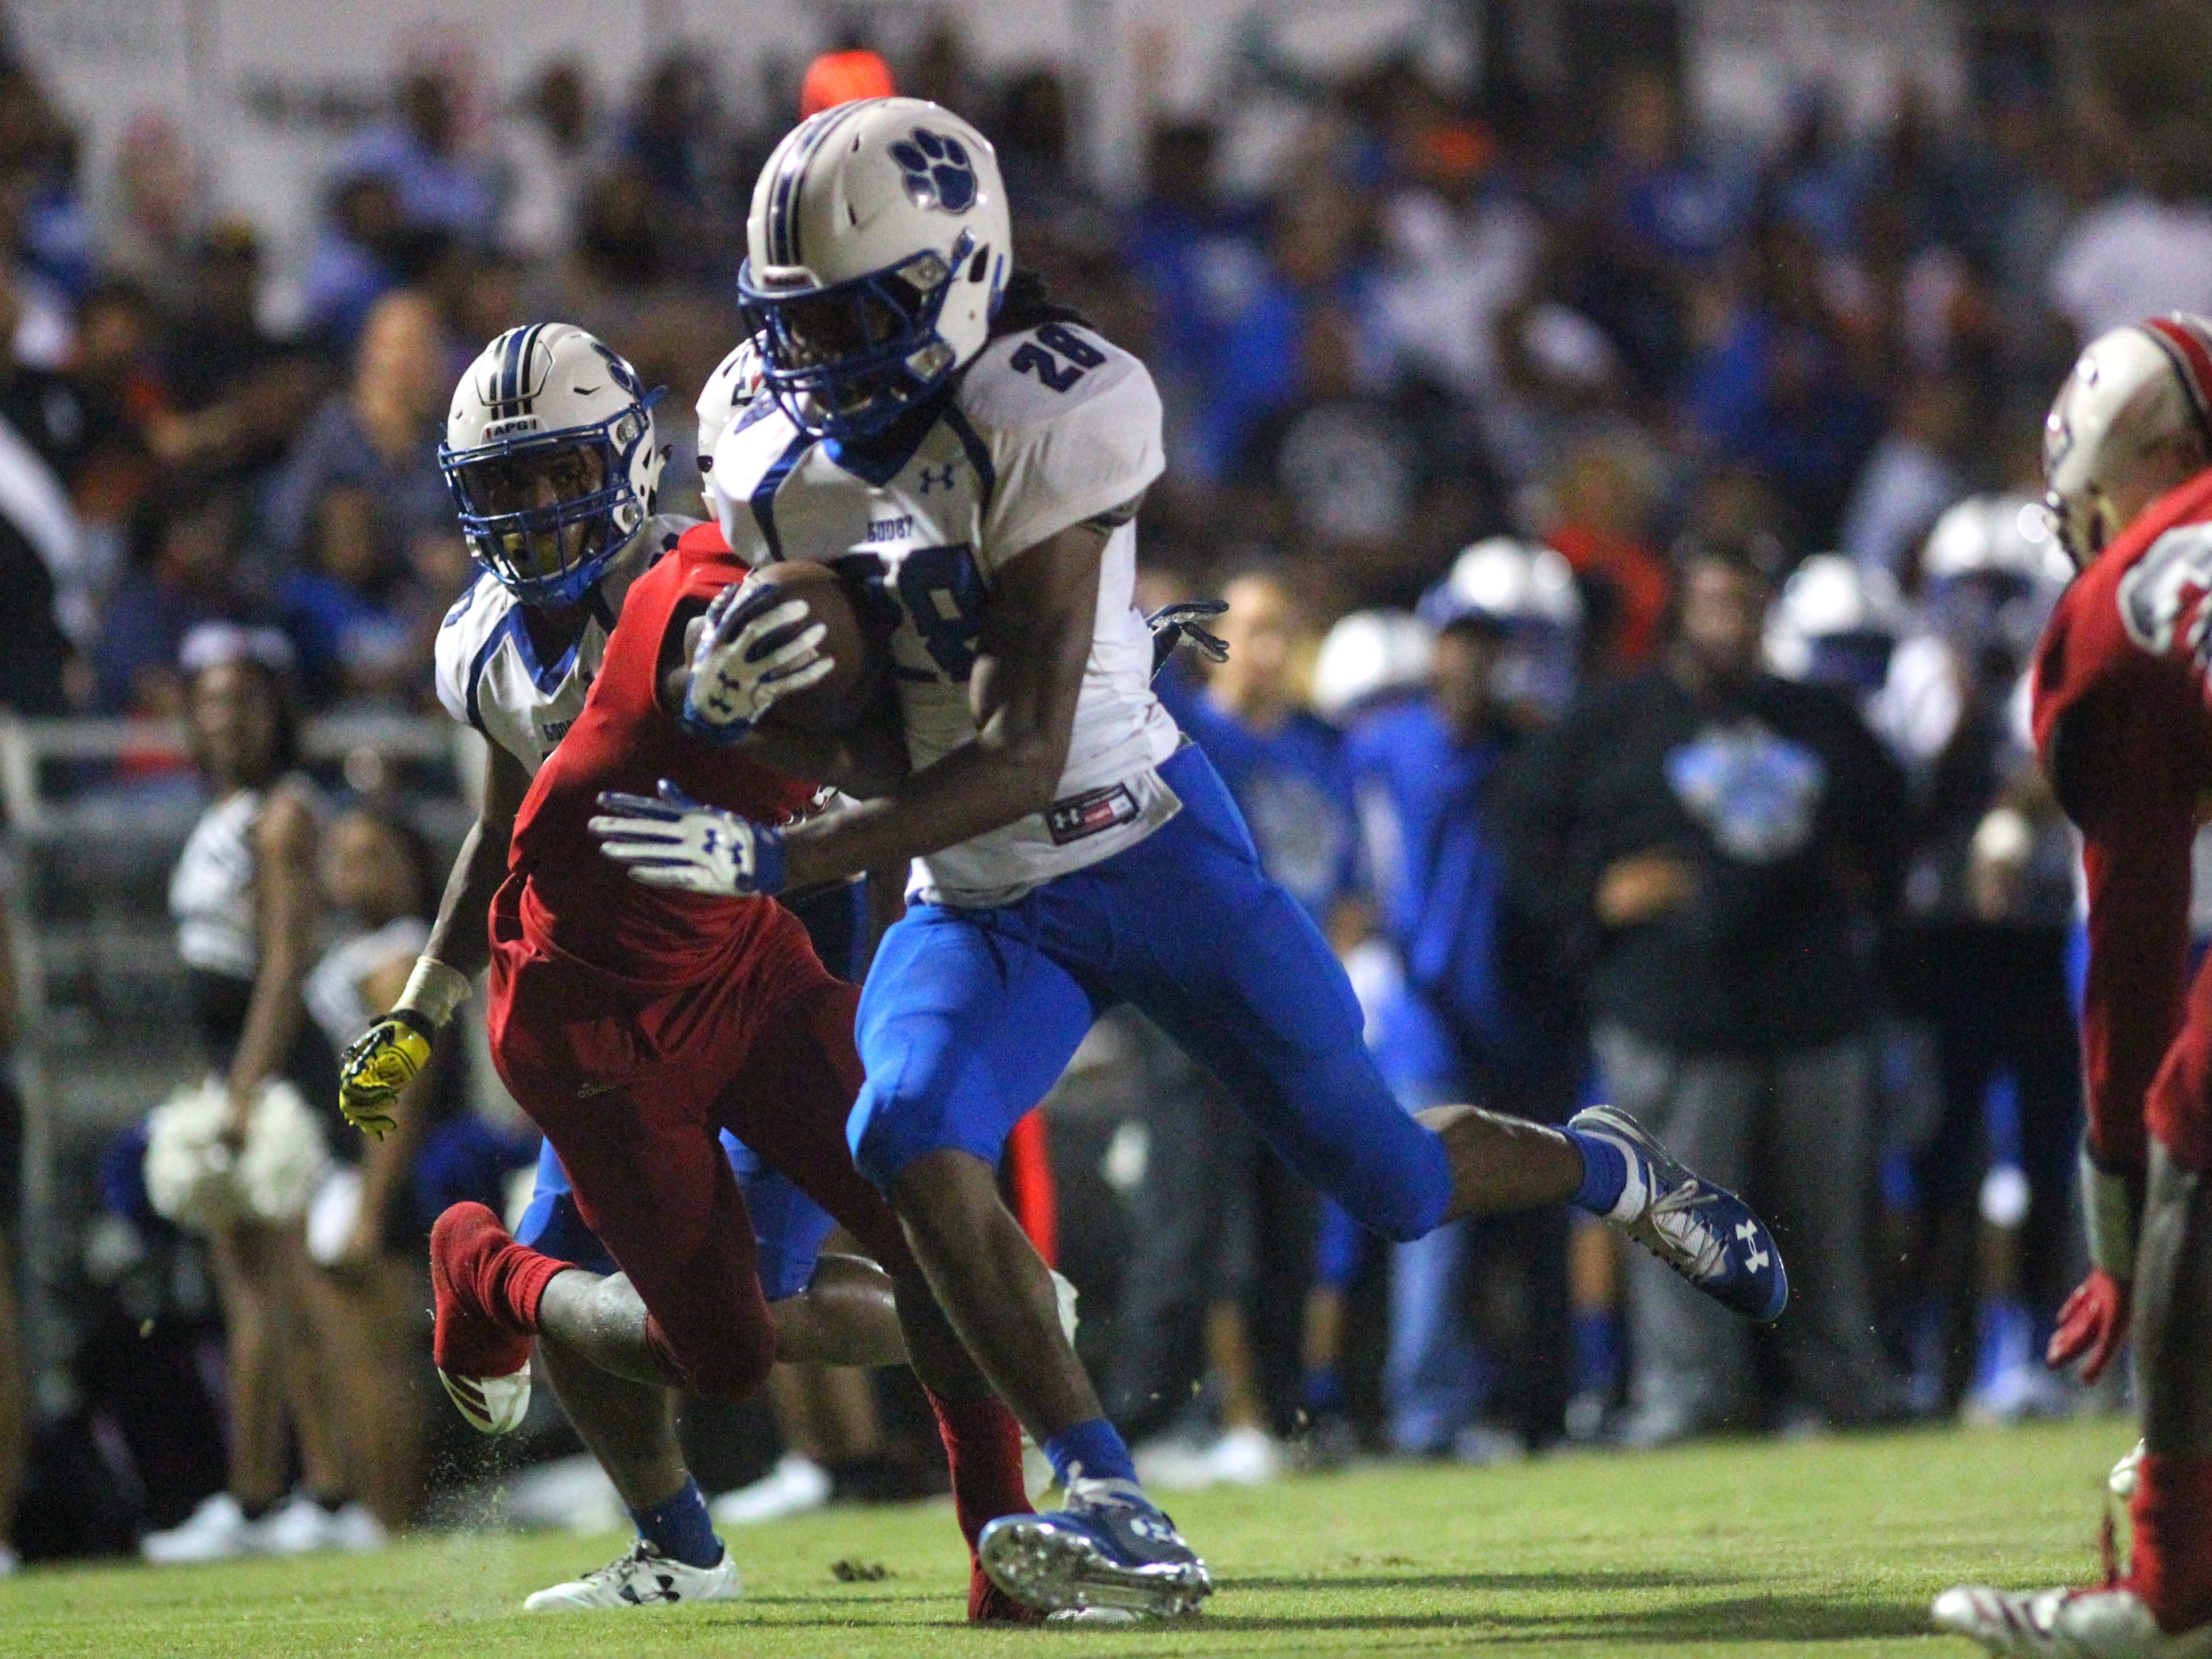 Godby running back Tyrique Paramore runs for a touchdown as the Cougars beat Wakulla 37-13 on Friday night.